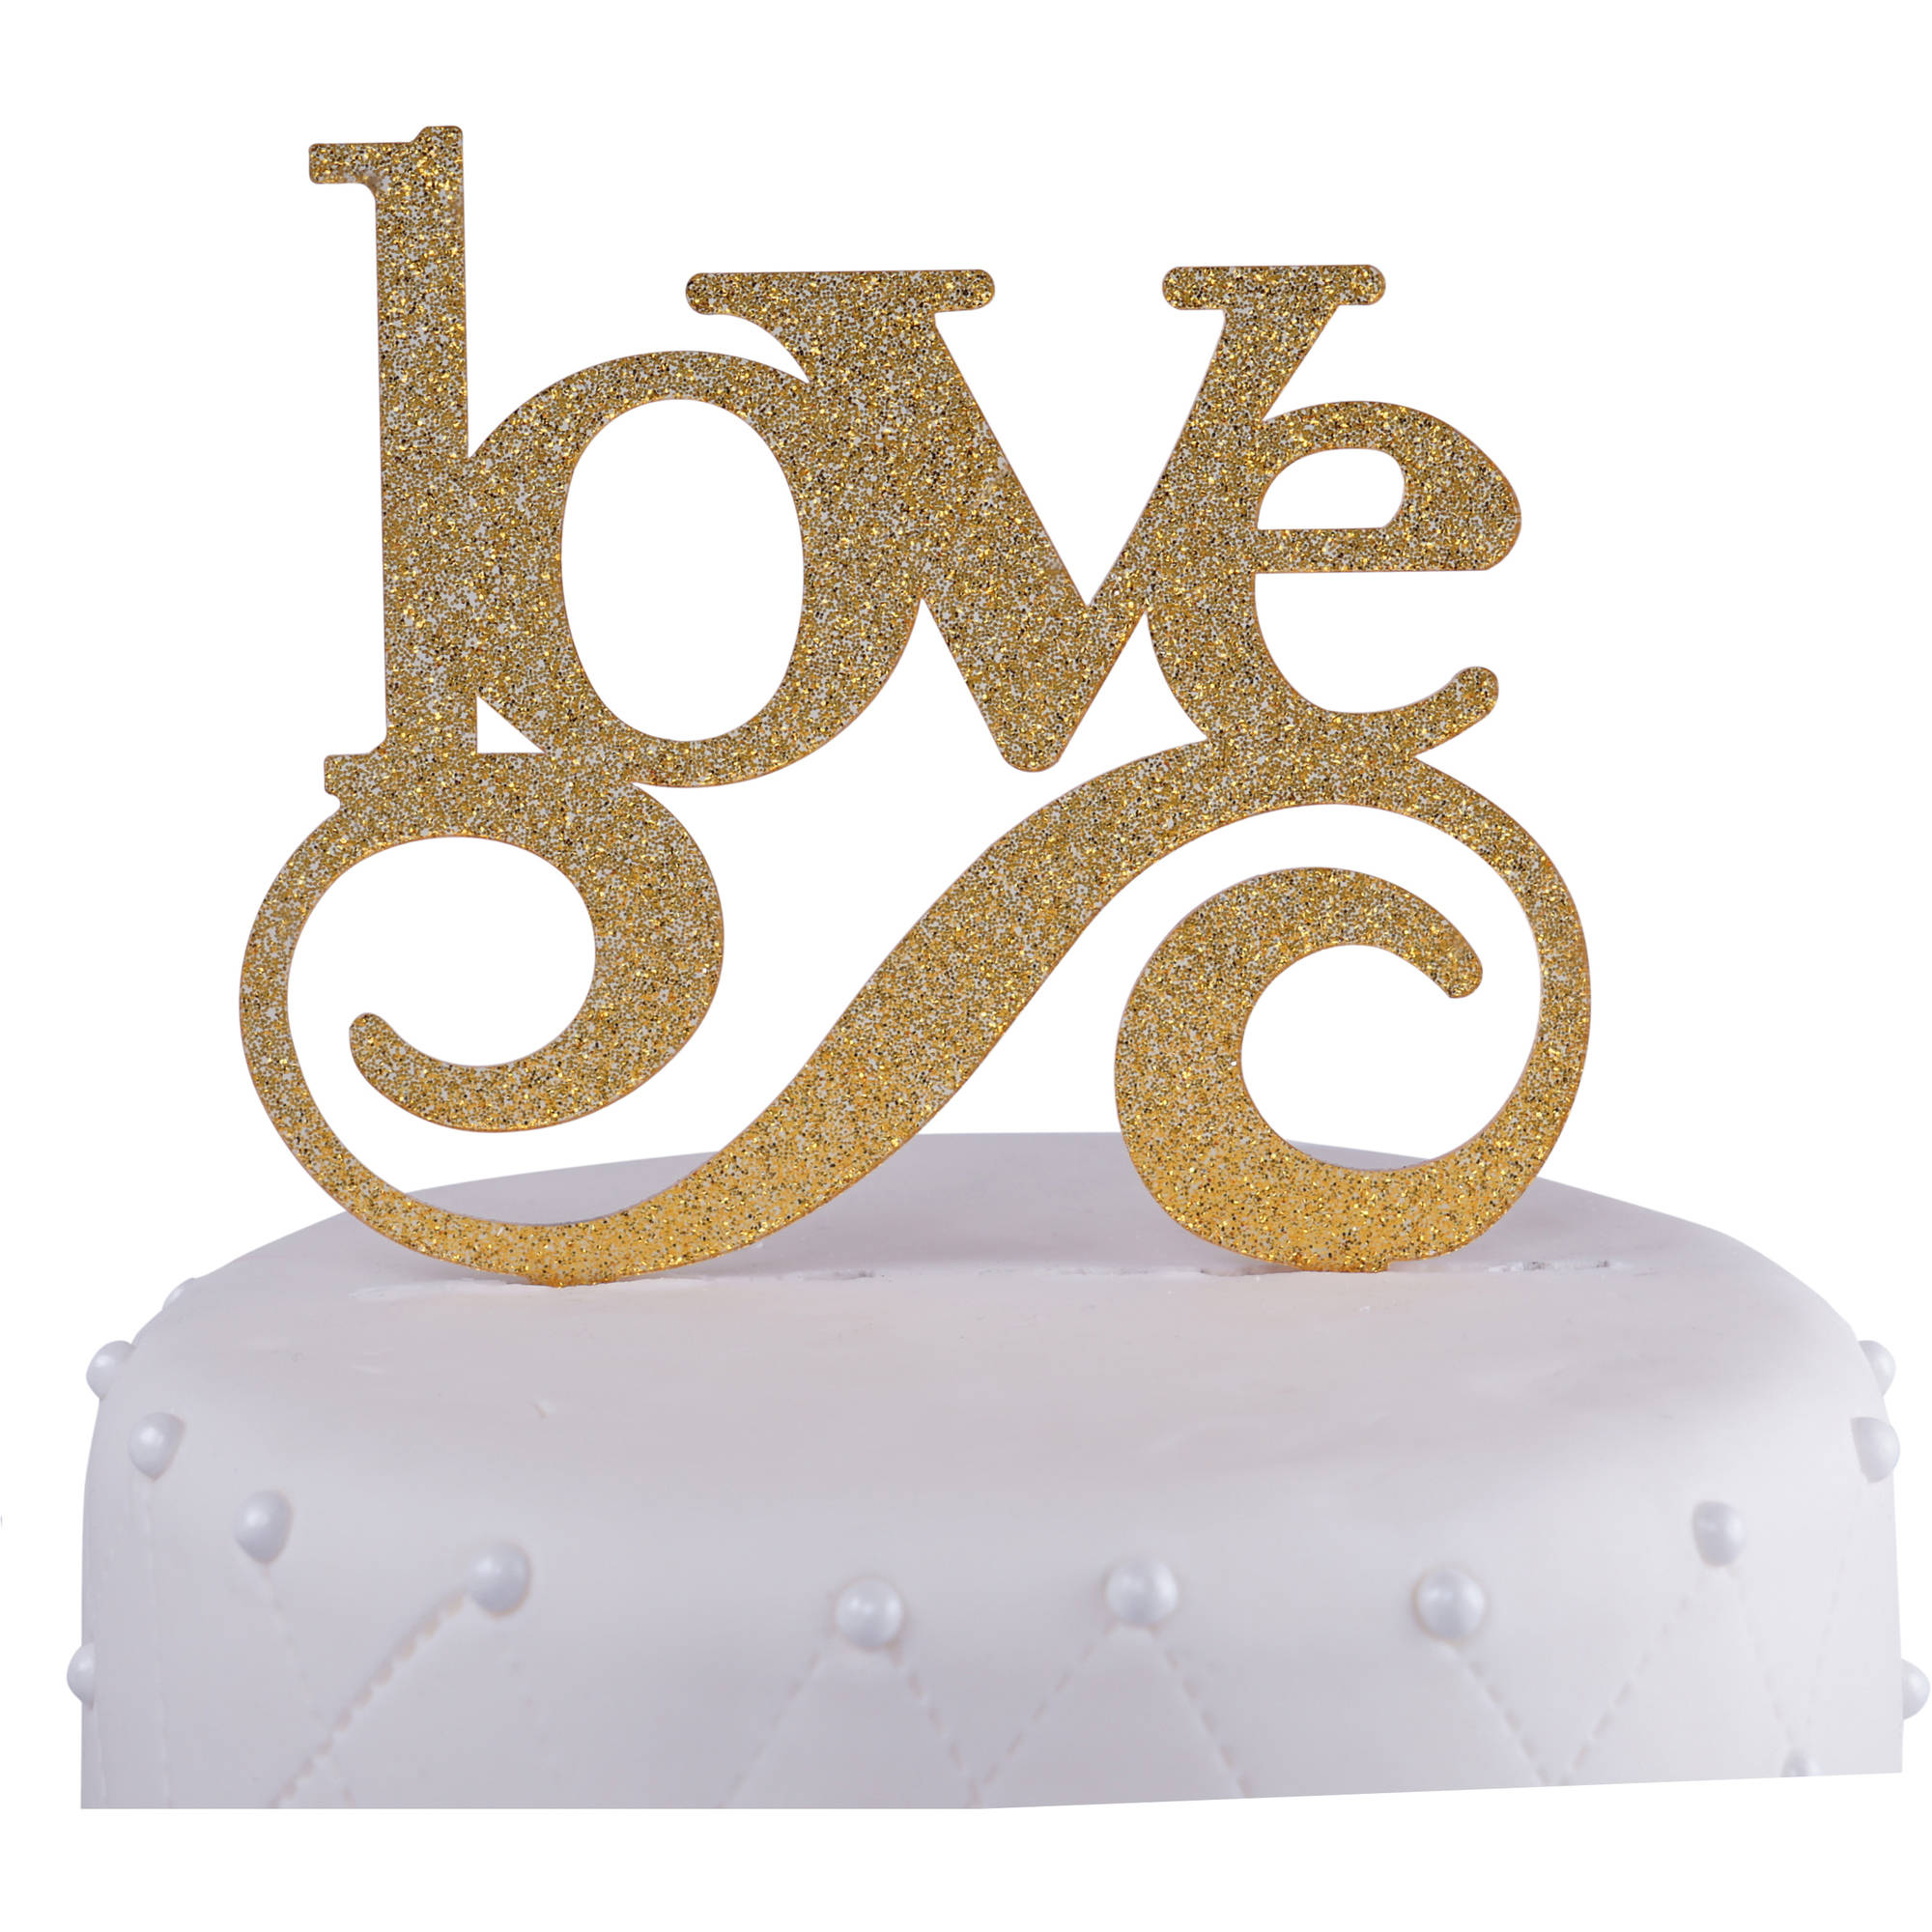 Unik Occasions Love Wedding Acrylic Cake Topper, Gold Glitter